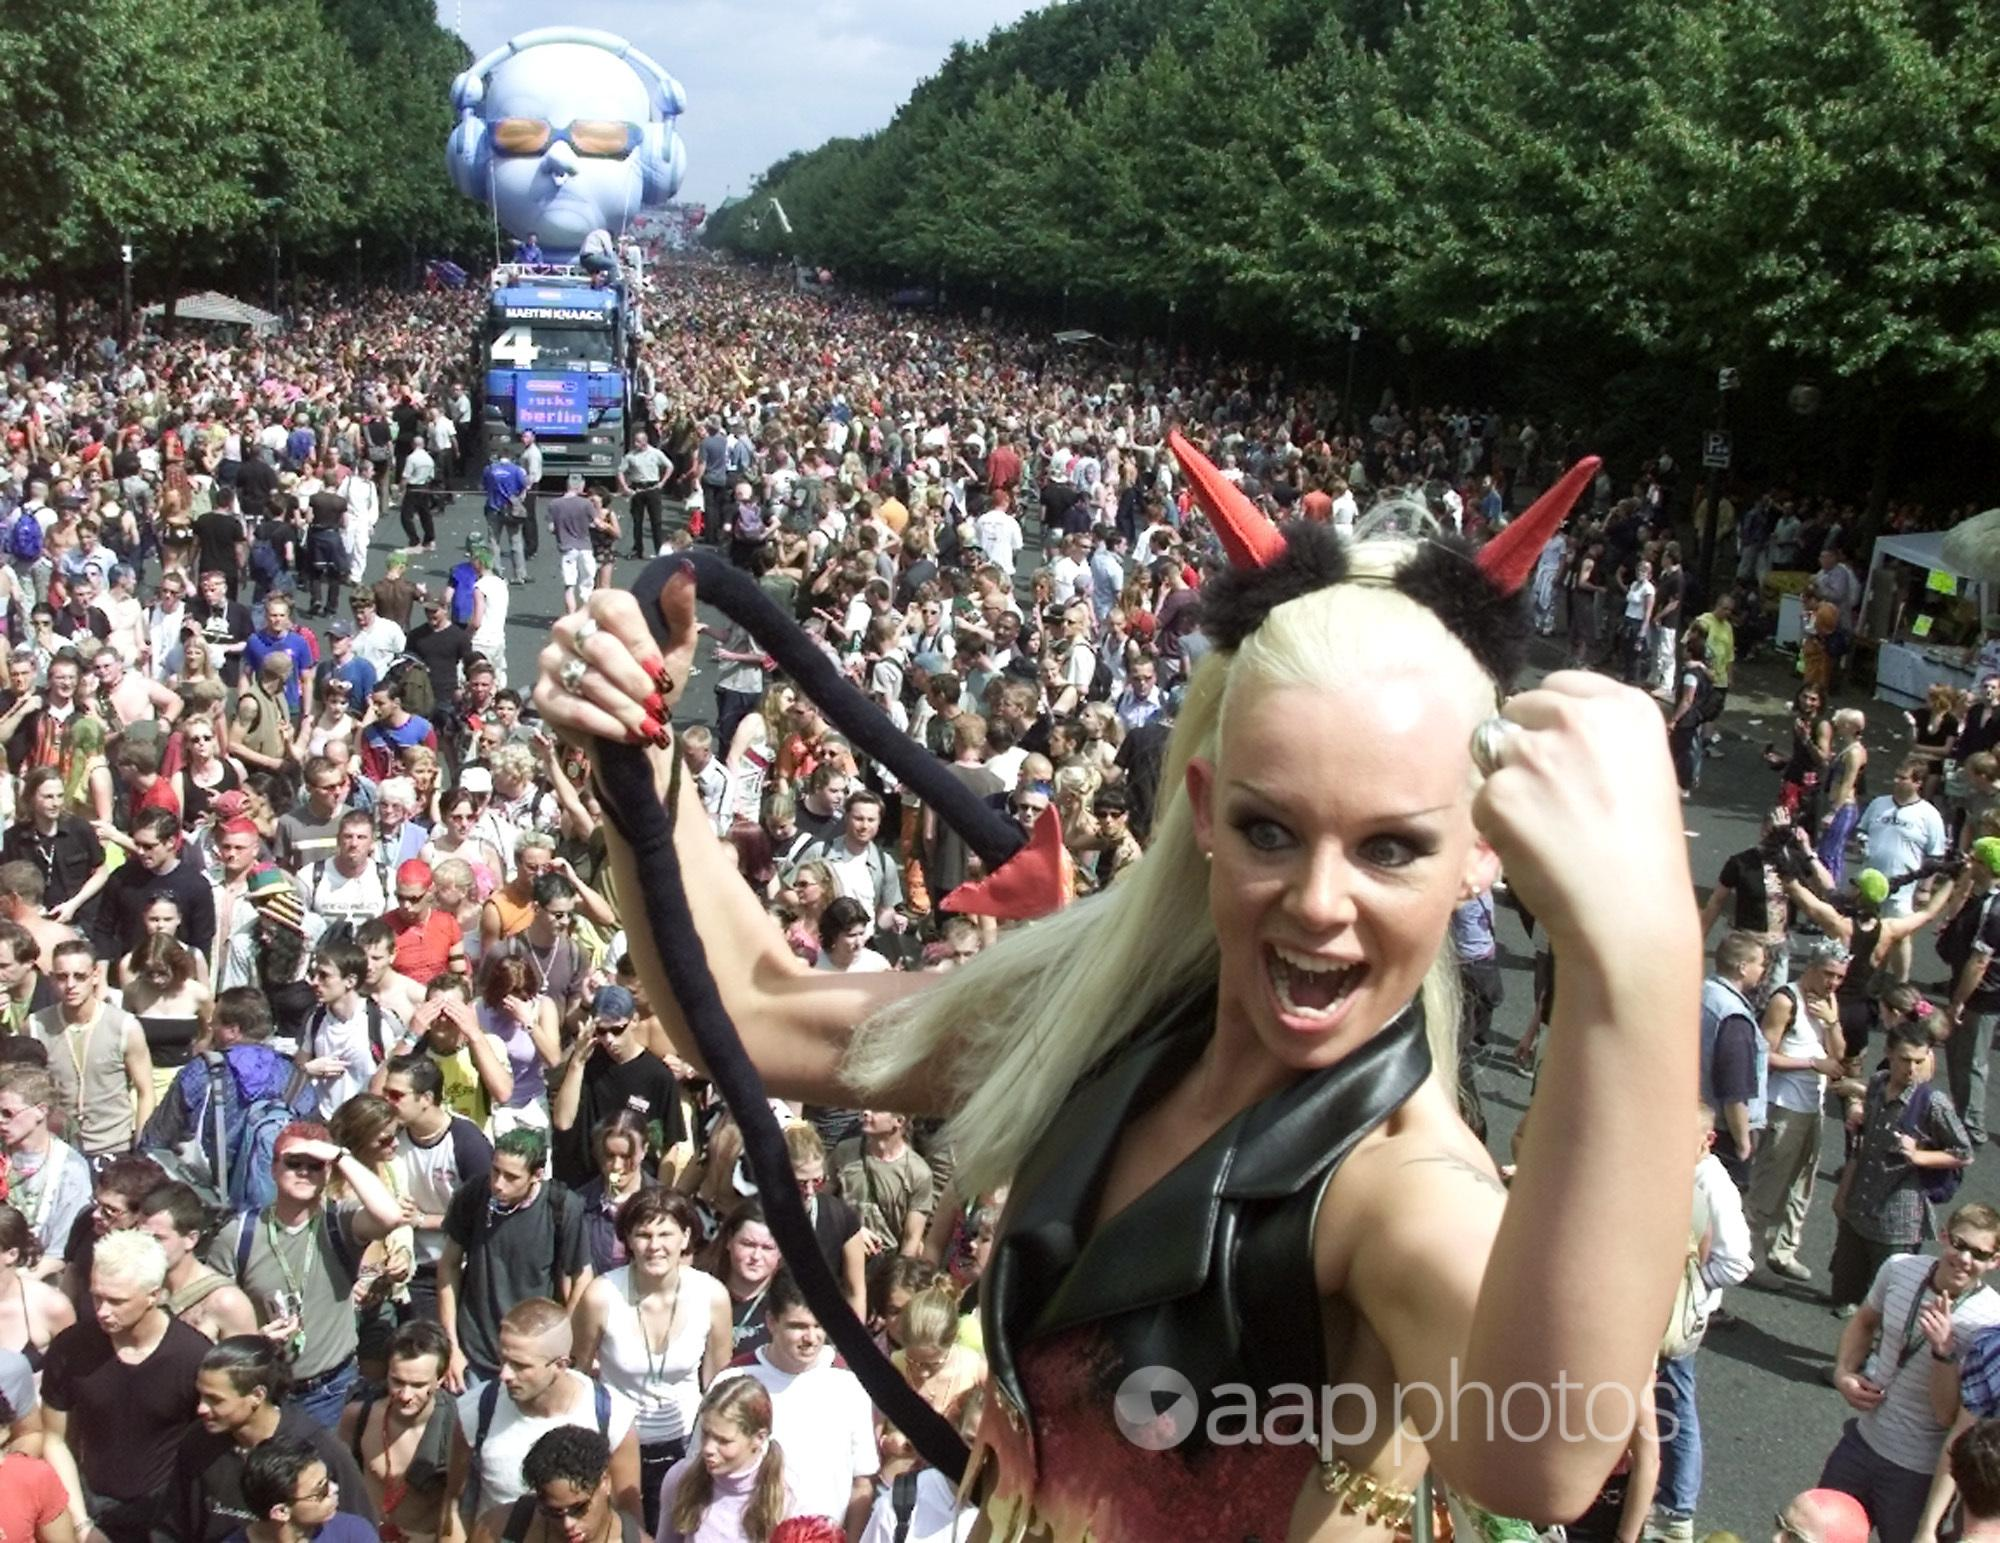 A raver at Berlin's Love Parade.